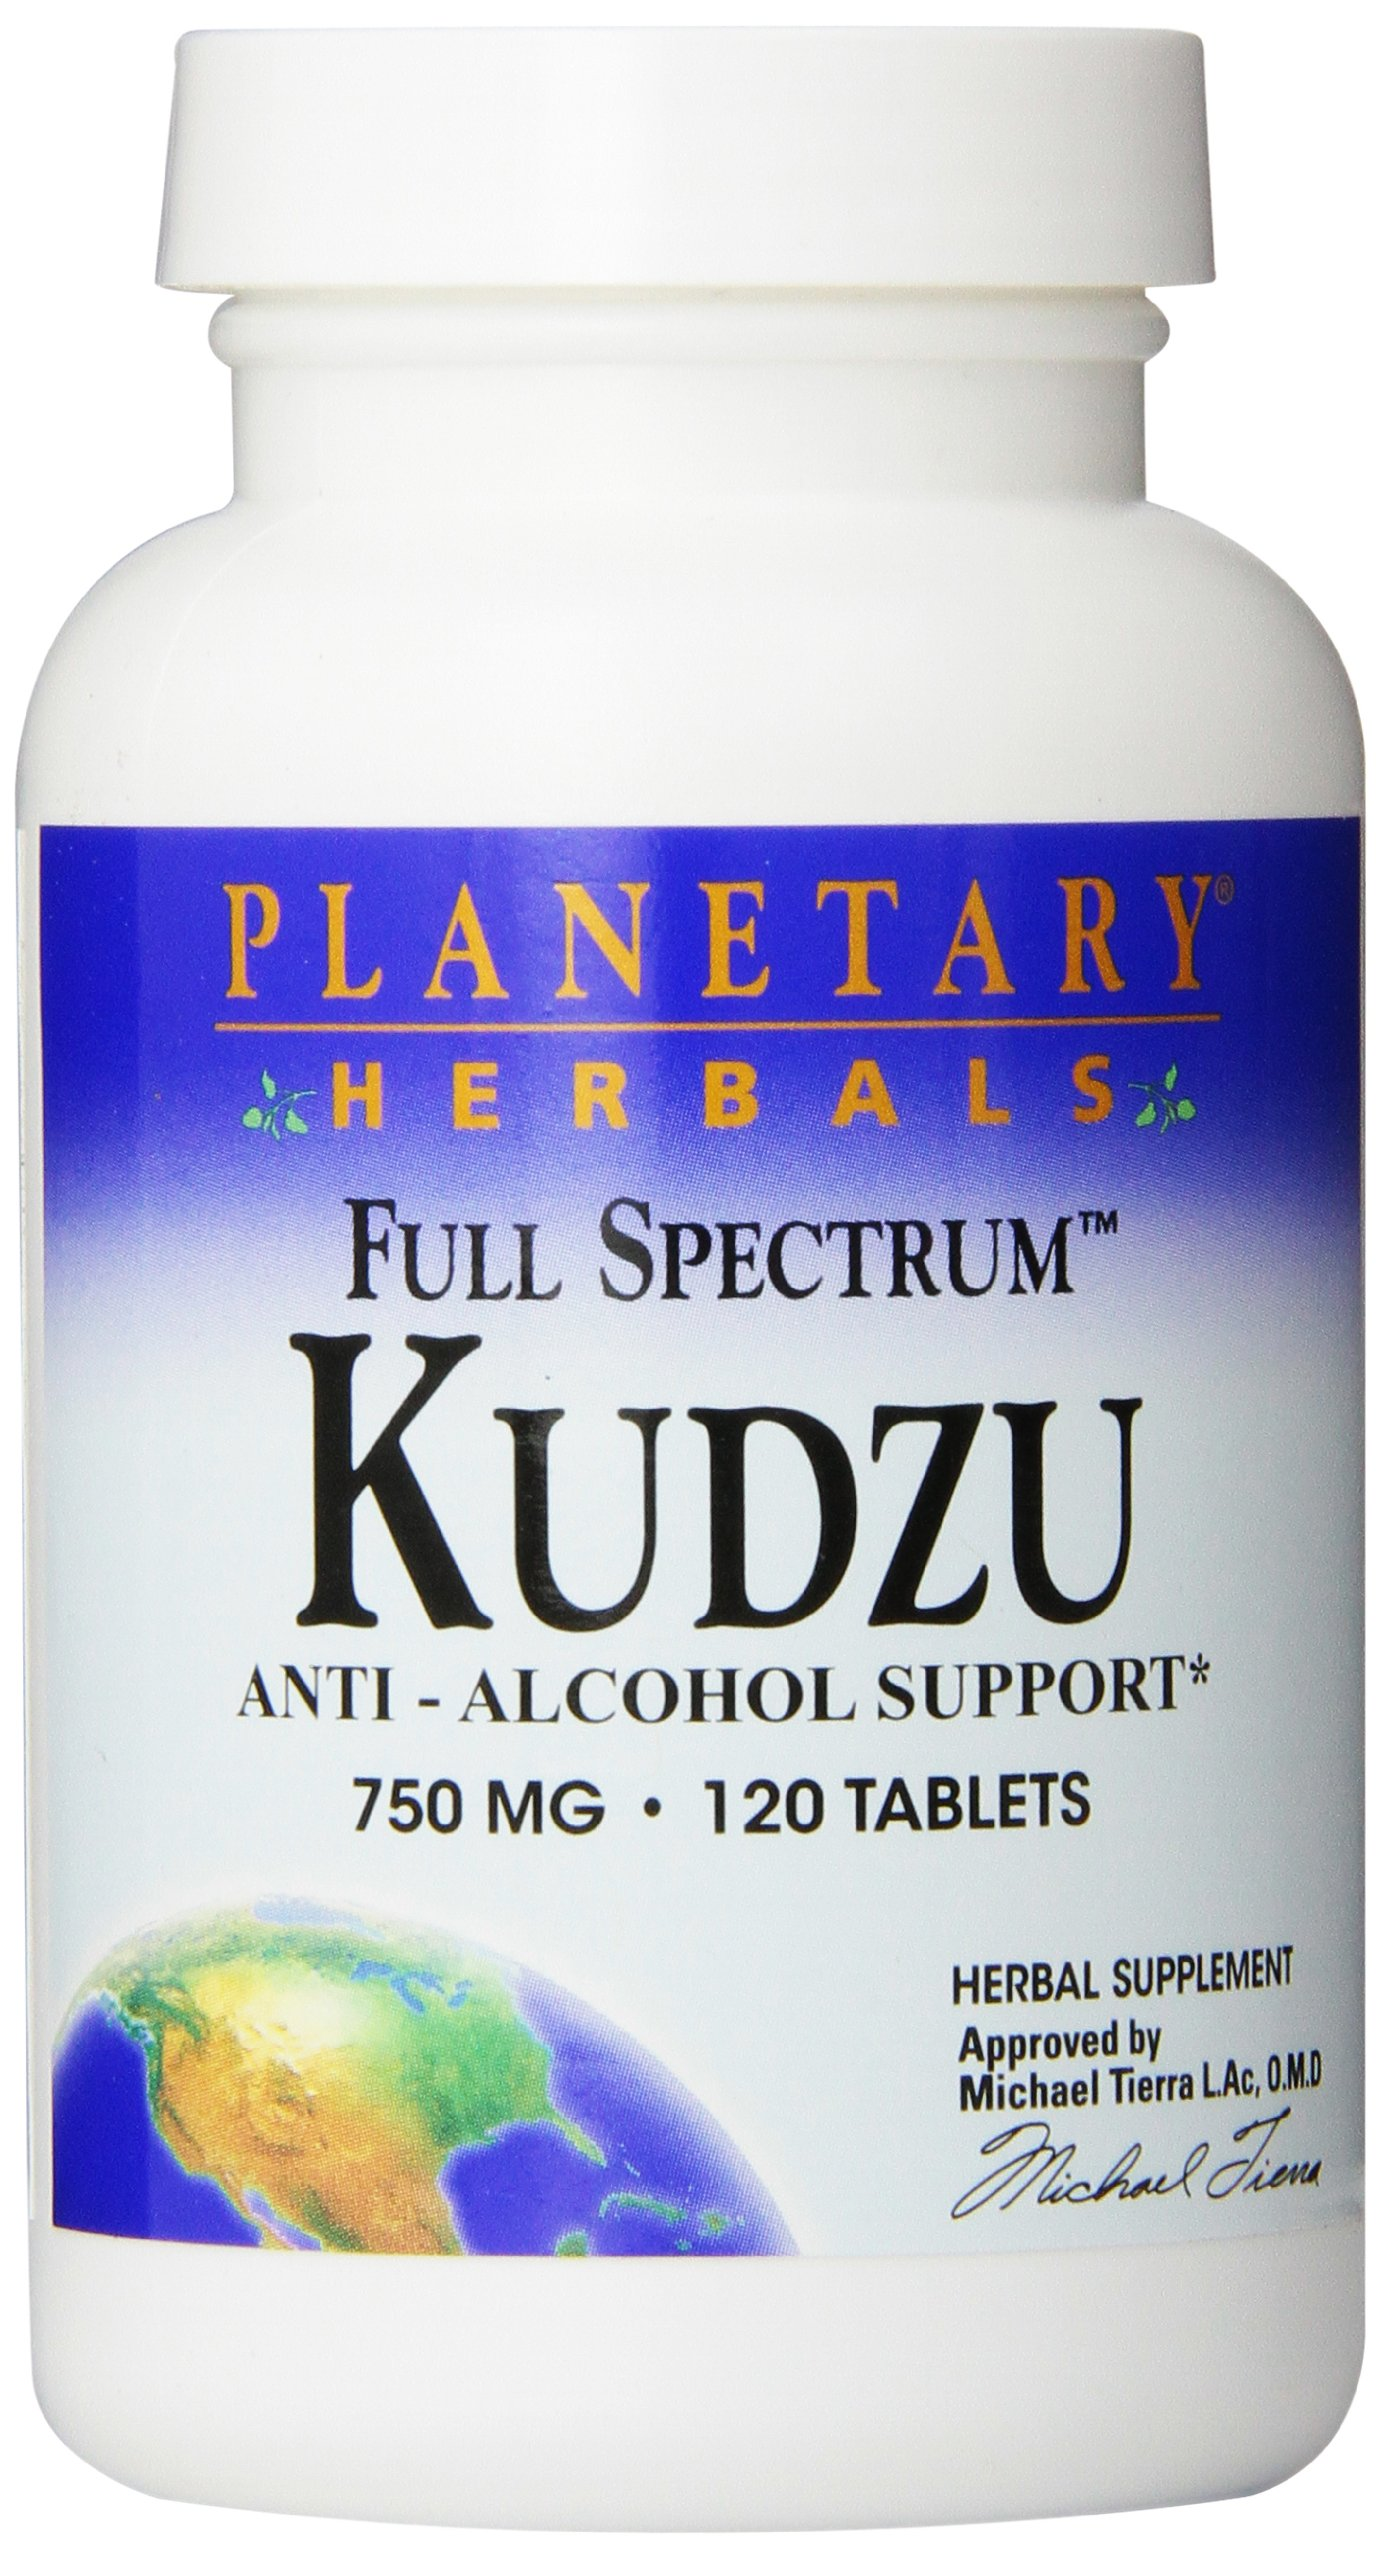 Planetary Herbals Full Spectrum Kudzu Tablets, 120 Count